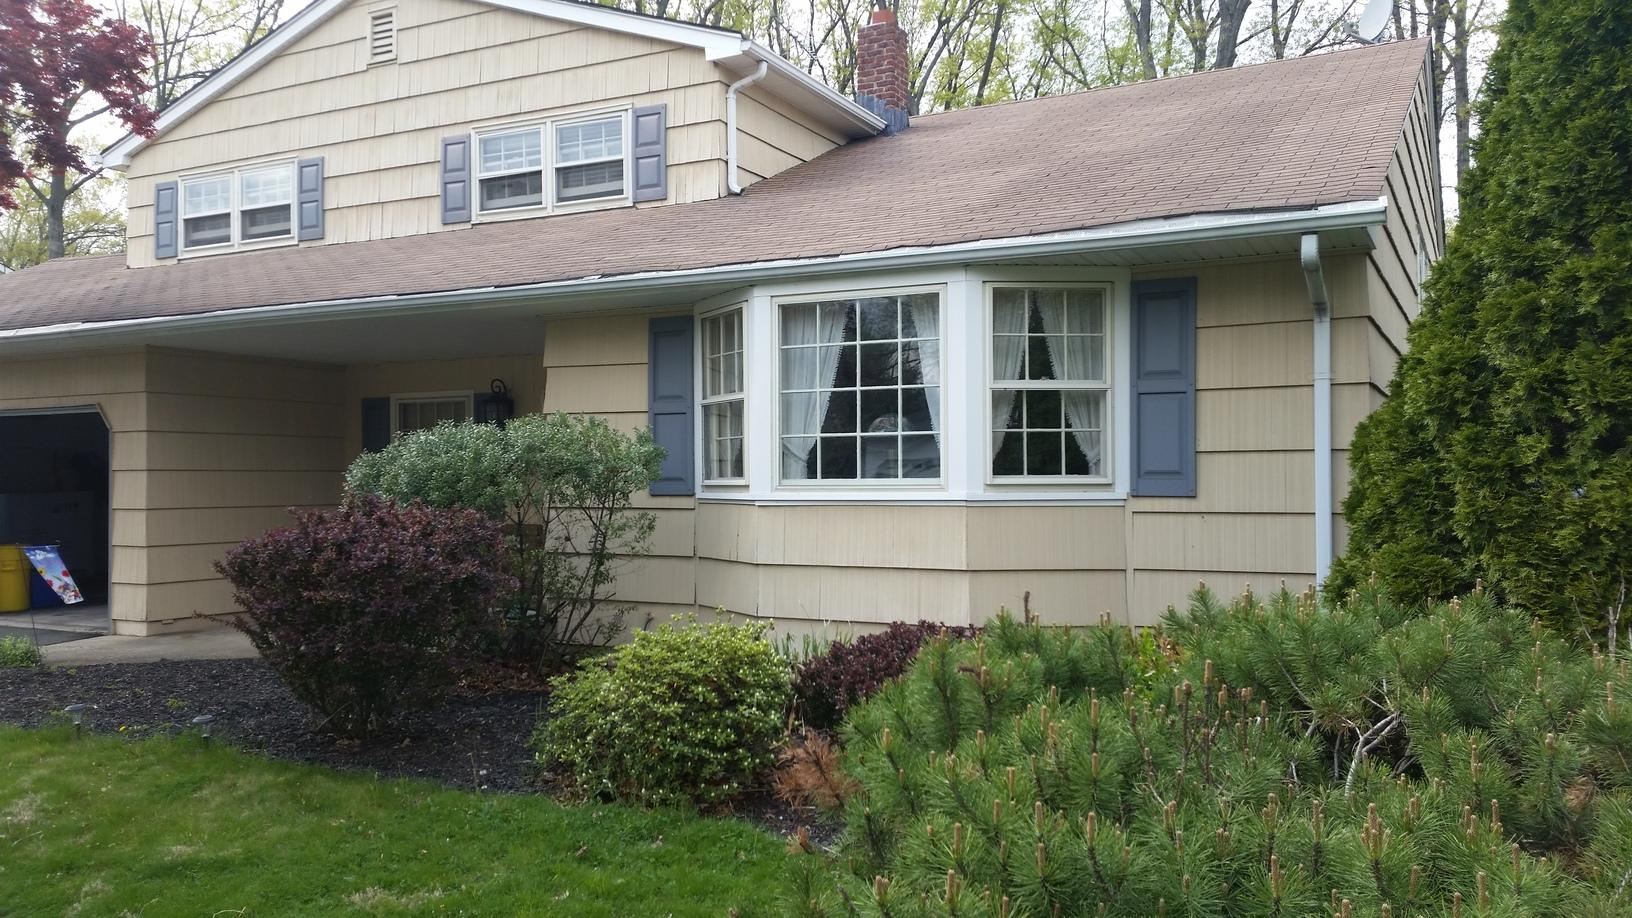 GlobalTech Vinyl Double Hung and Bay Window, Harbor Blue Odyssey Vinyl Clap Board Siding, and Owens Corning Estate Grey Architectural Shingle Installation in East Brunswick, NJ - Before Photo